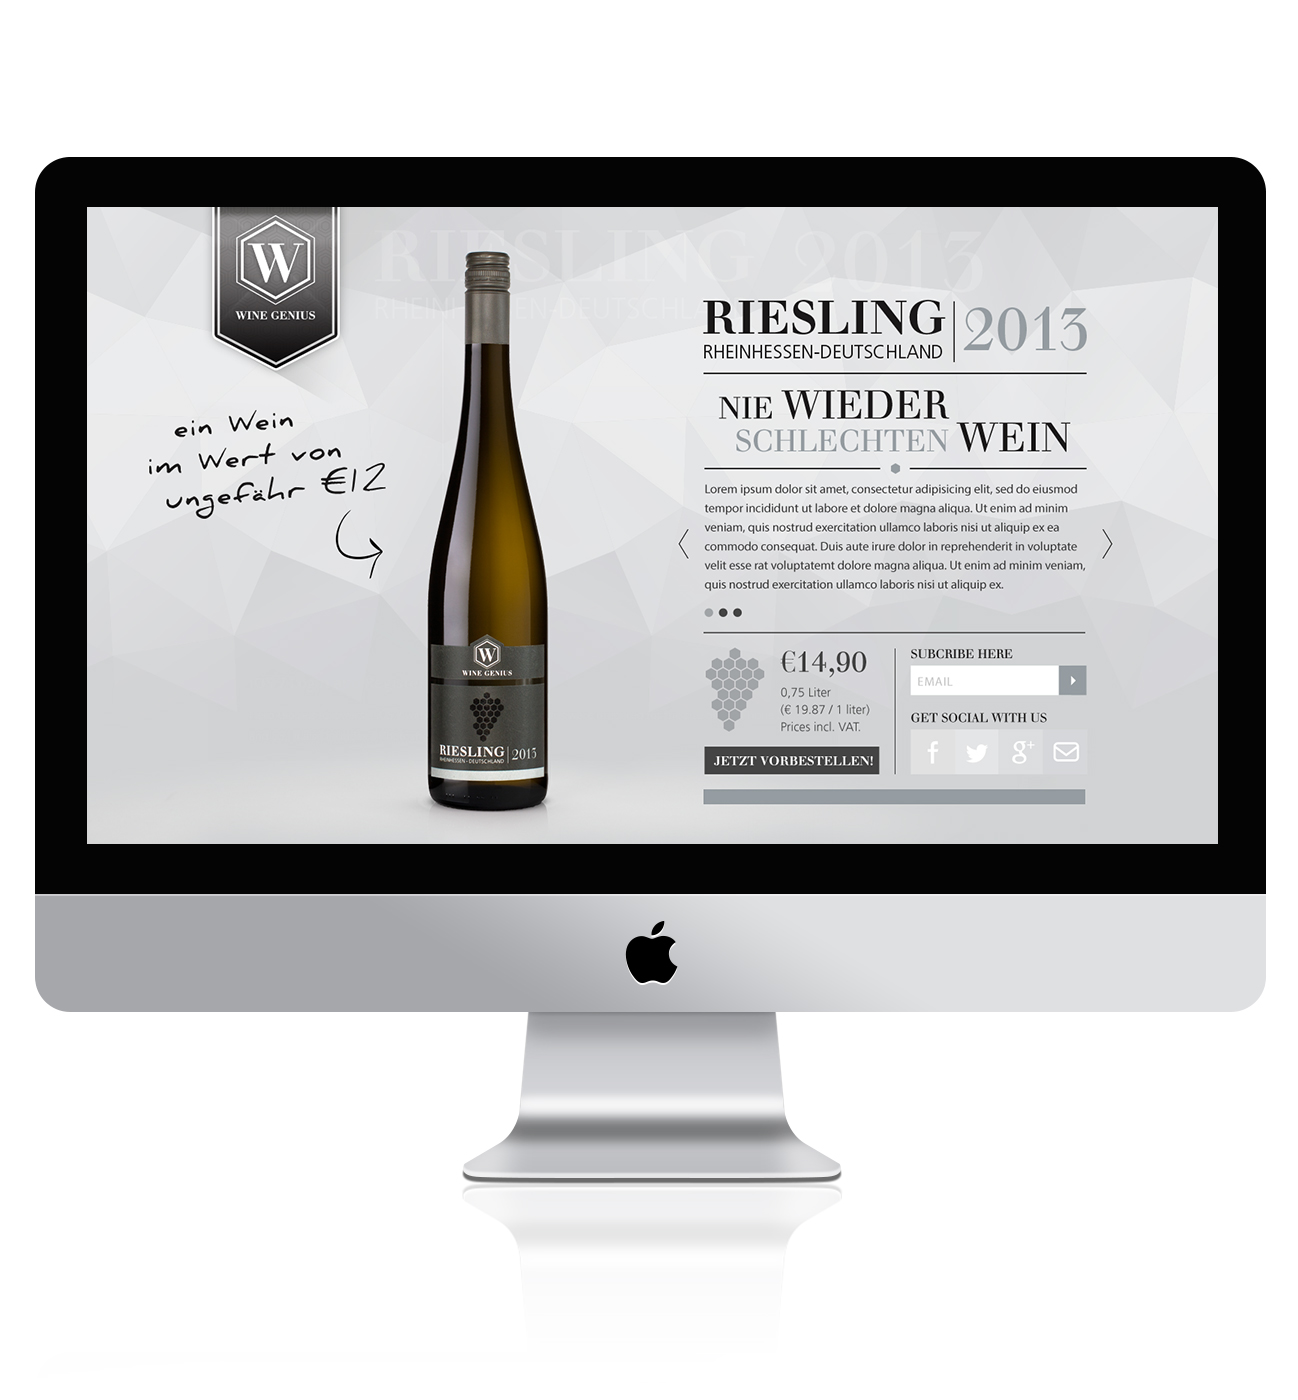 Riesling product landing page design